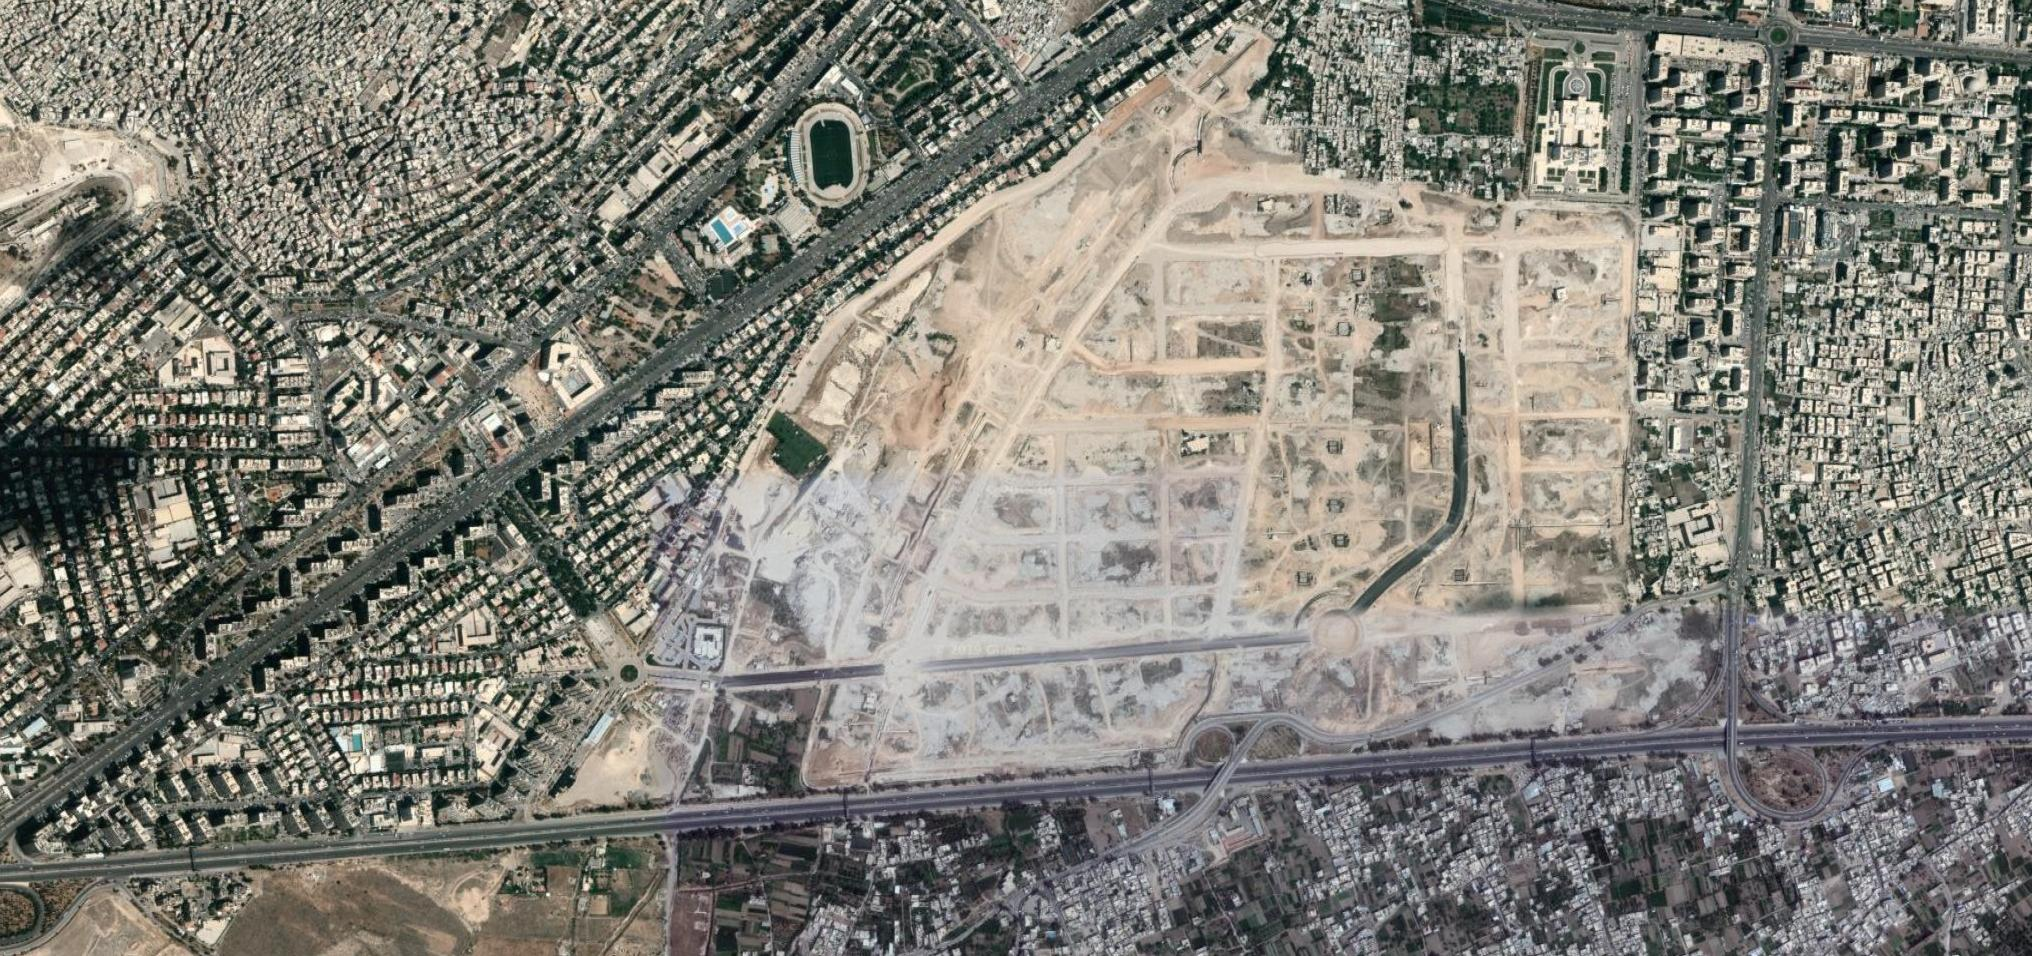 Is Marota City the Type of Reconstruction Syrians Need?